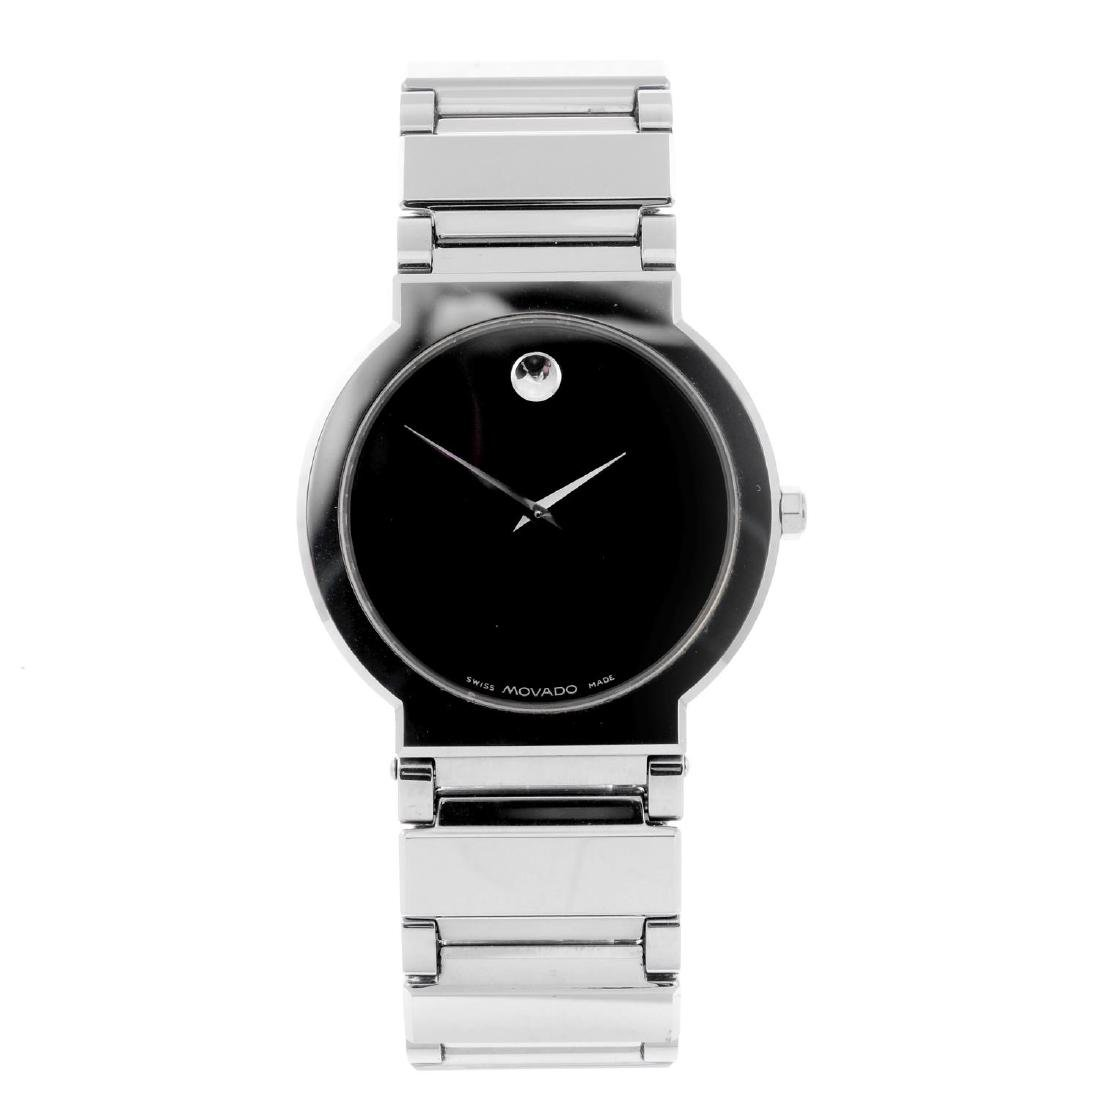 MOVADO - a gentleman's Valor bracelet watch. Tungsten